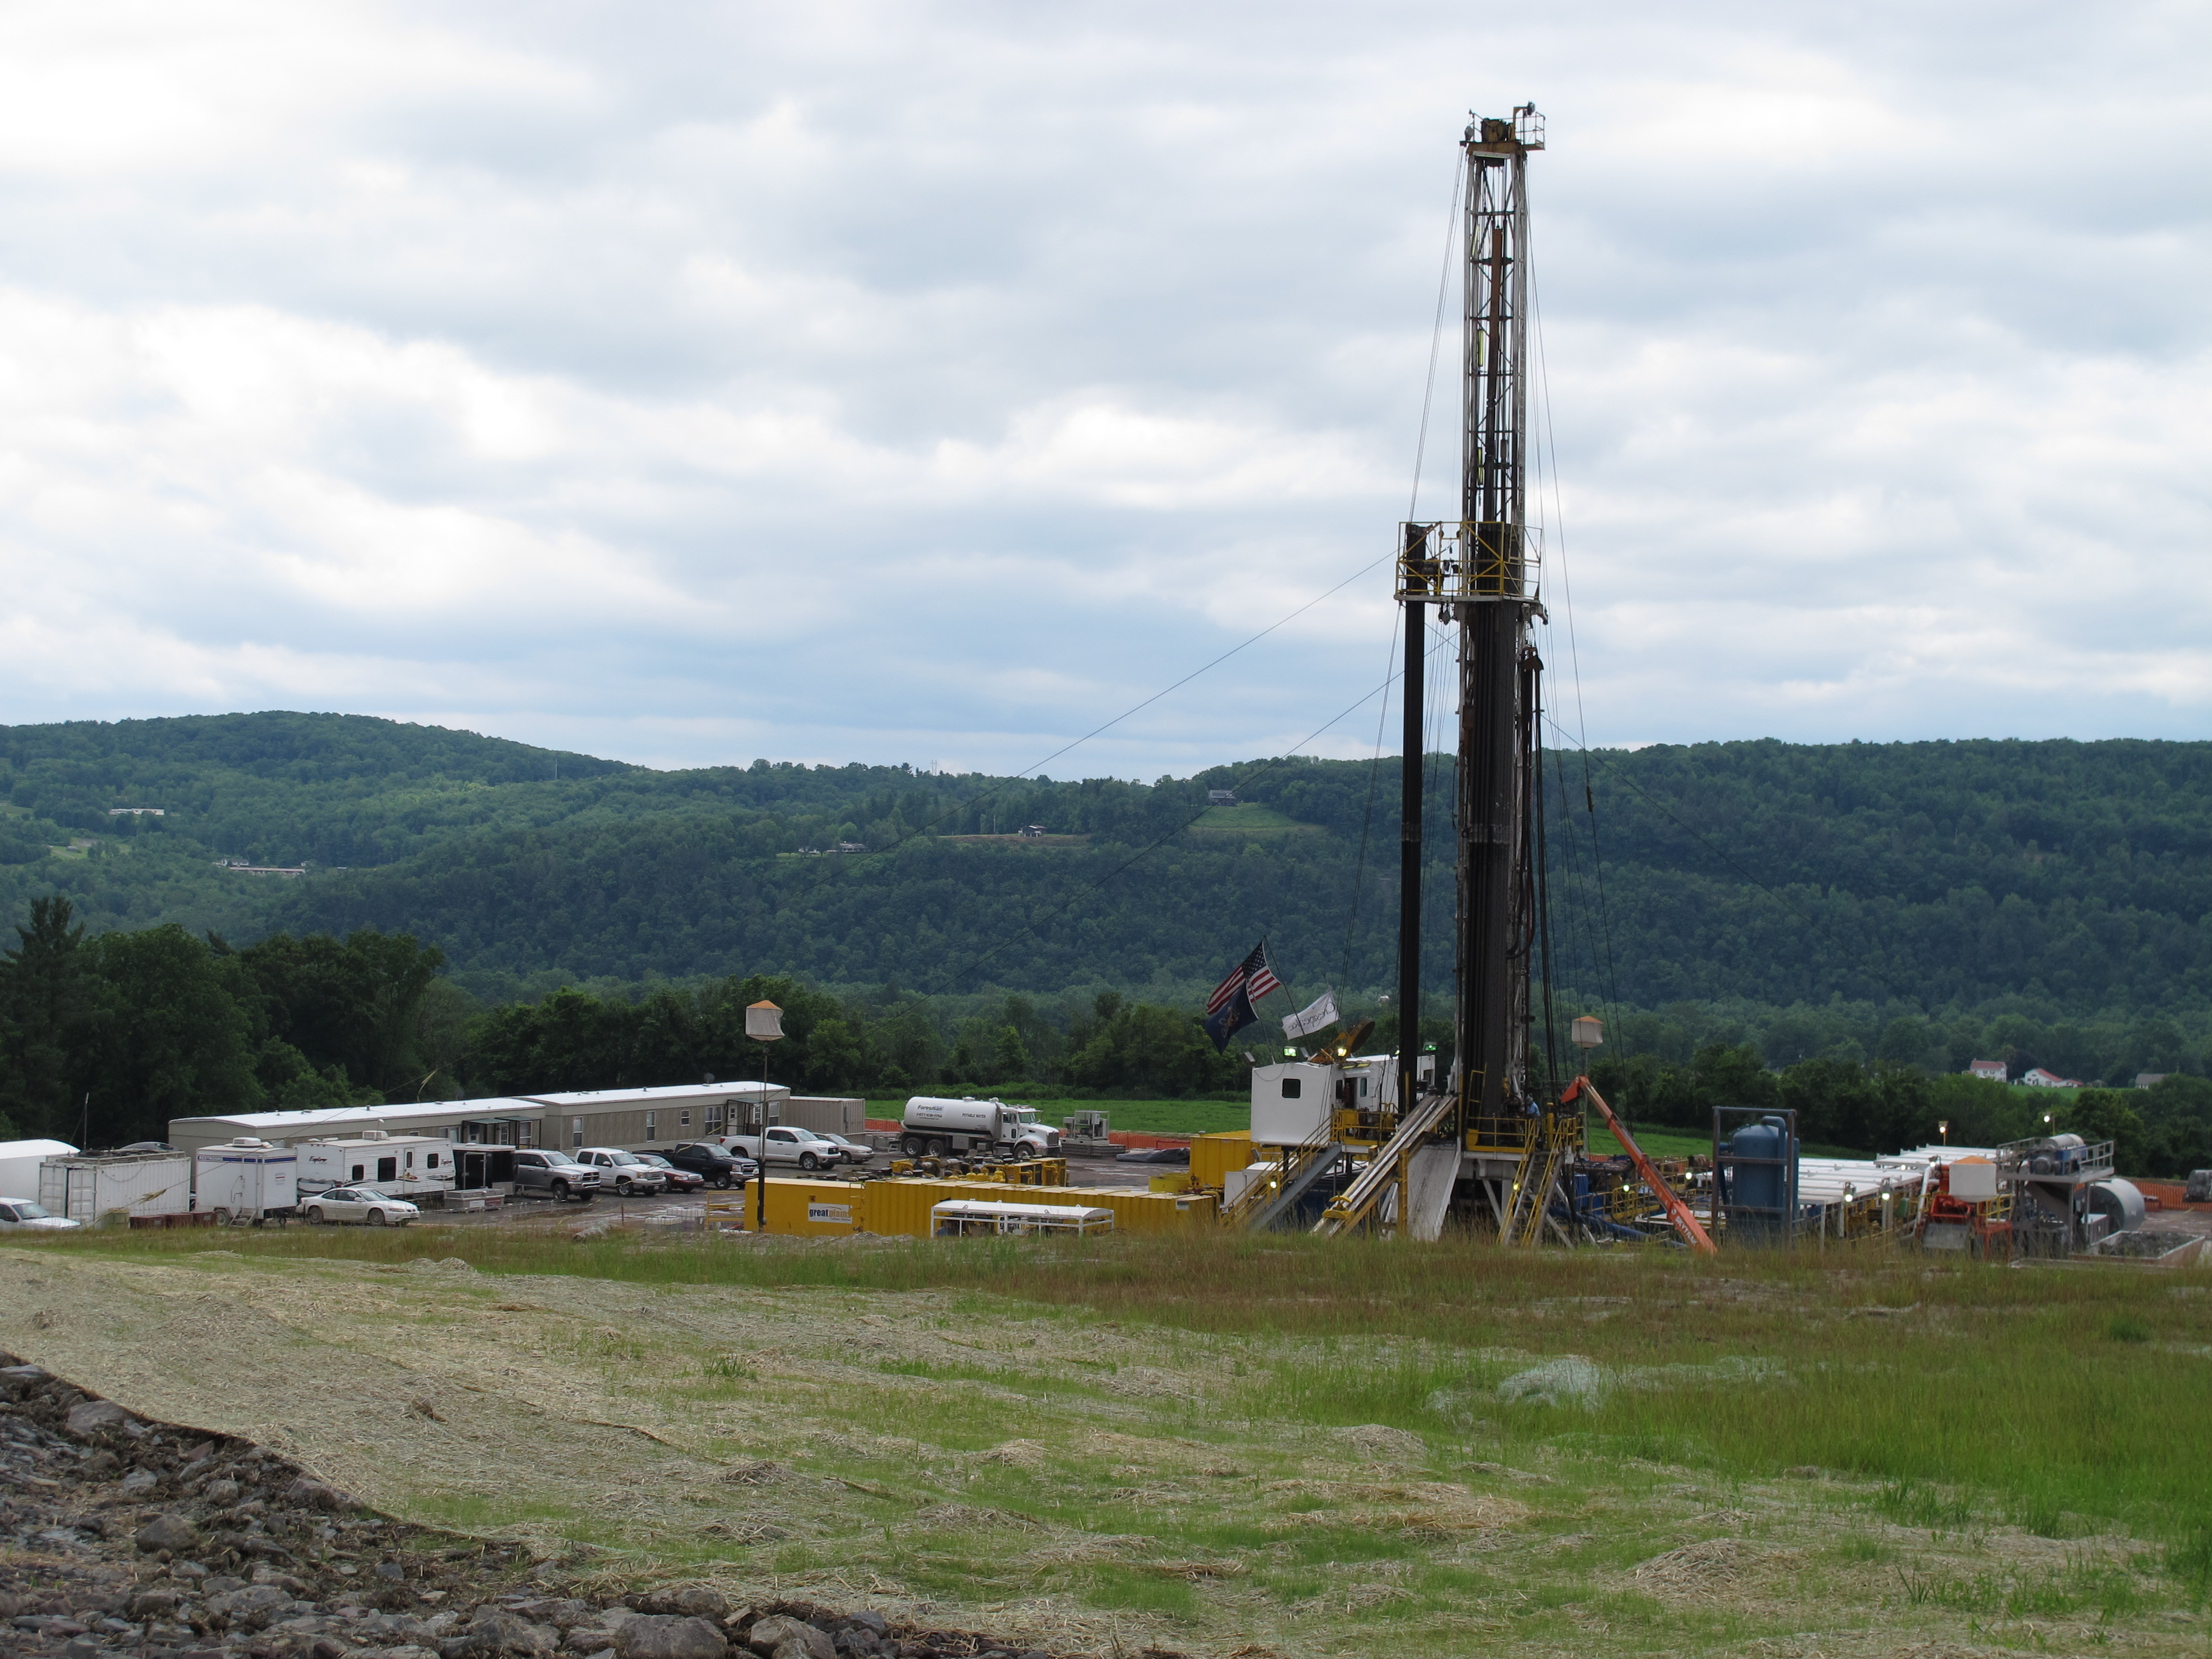 Tuesday S Primary A Mini Referendum On Pennsylvania Fracking Ban The American Energy News The American Energy News